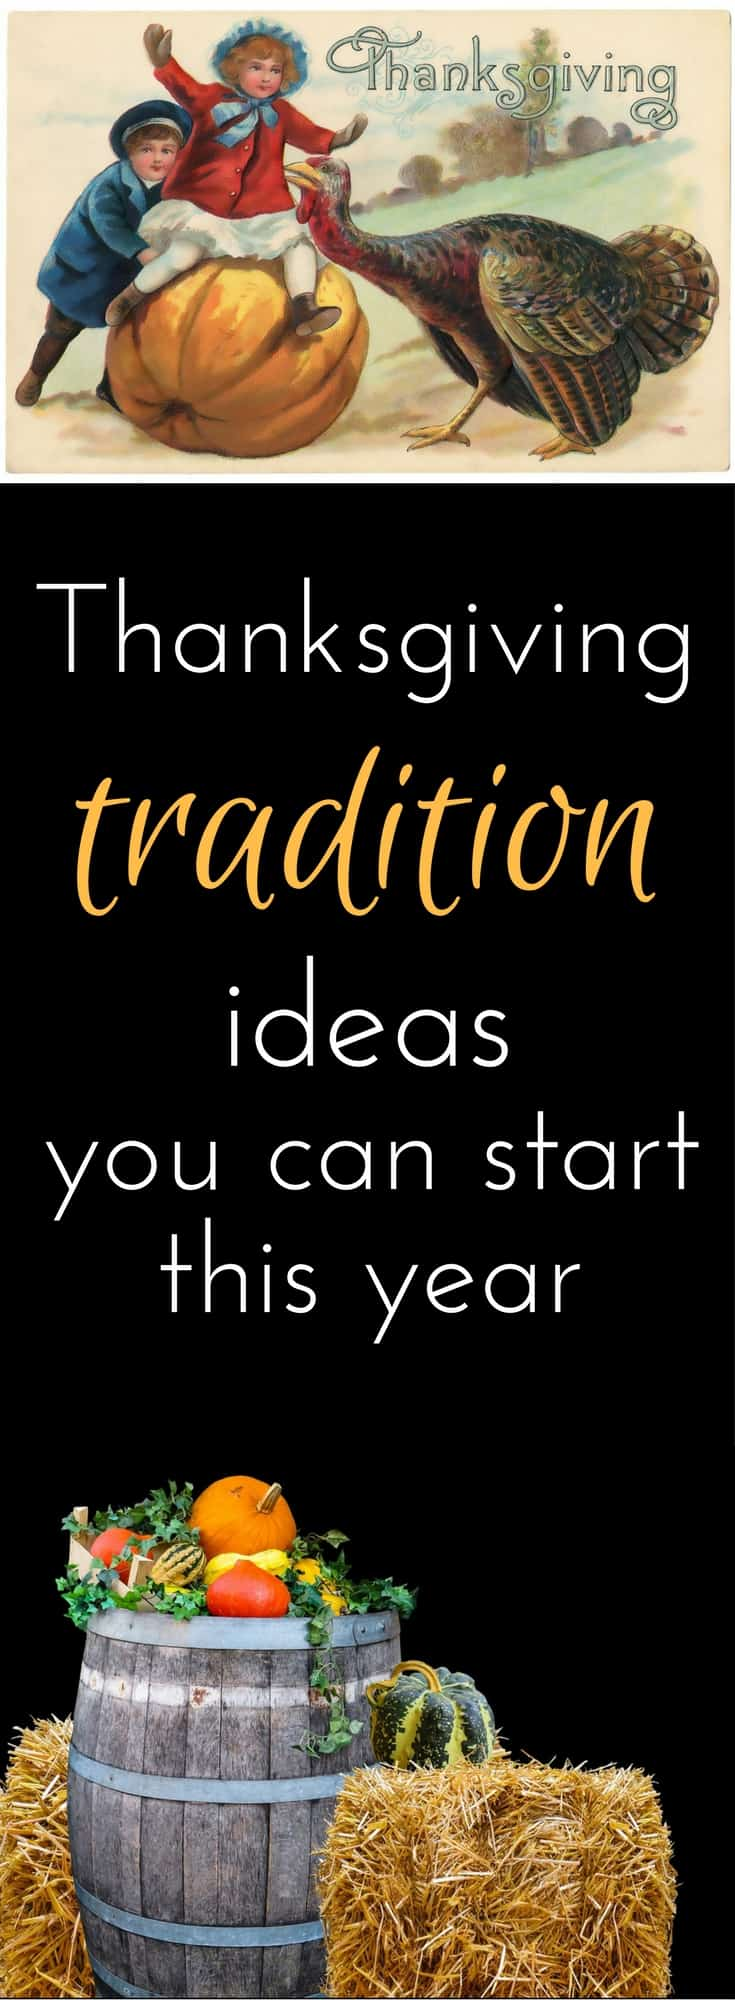 Thanksgiving tradition ideas that will add to your family's fun and help create memories you can return to year after year.